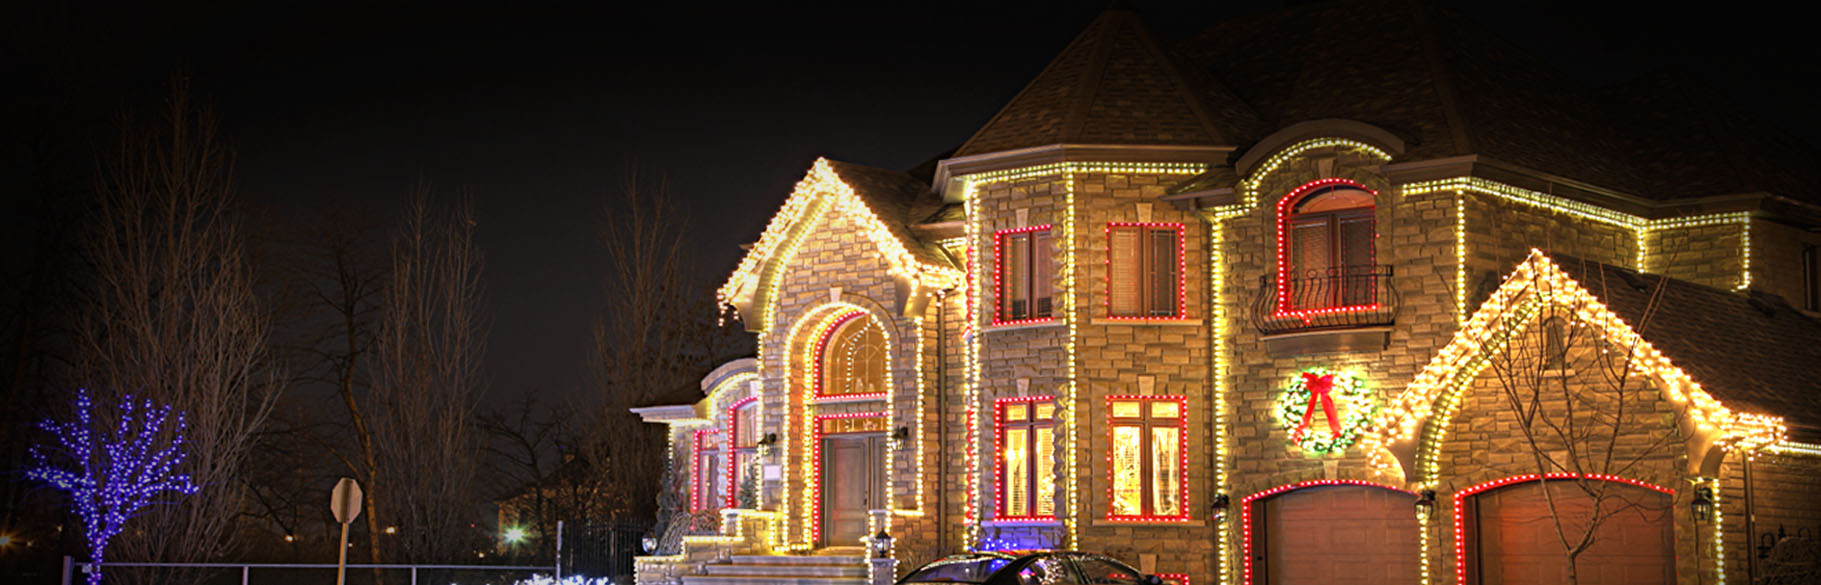 Holiday Lighting Tulsa